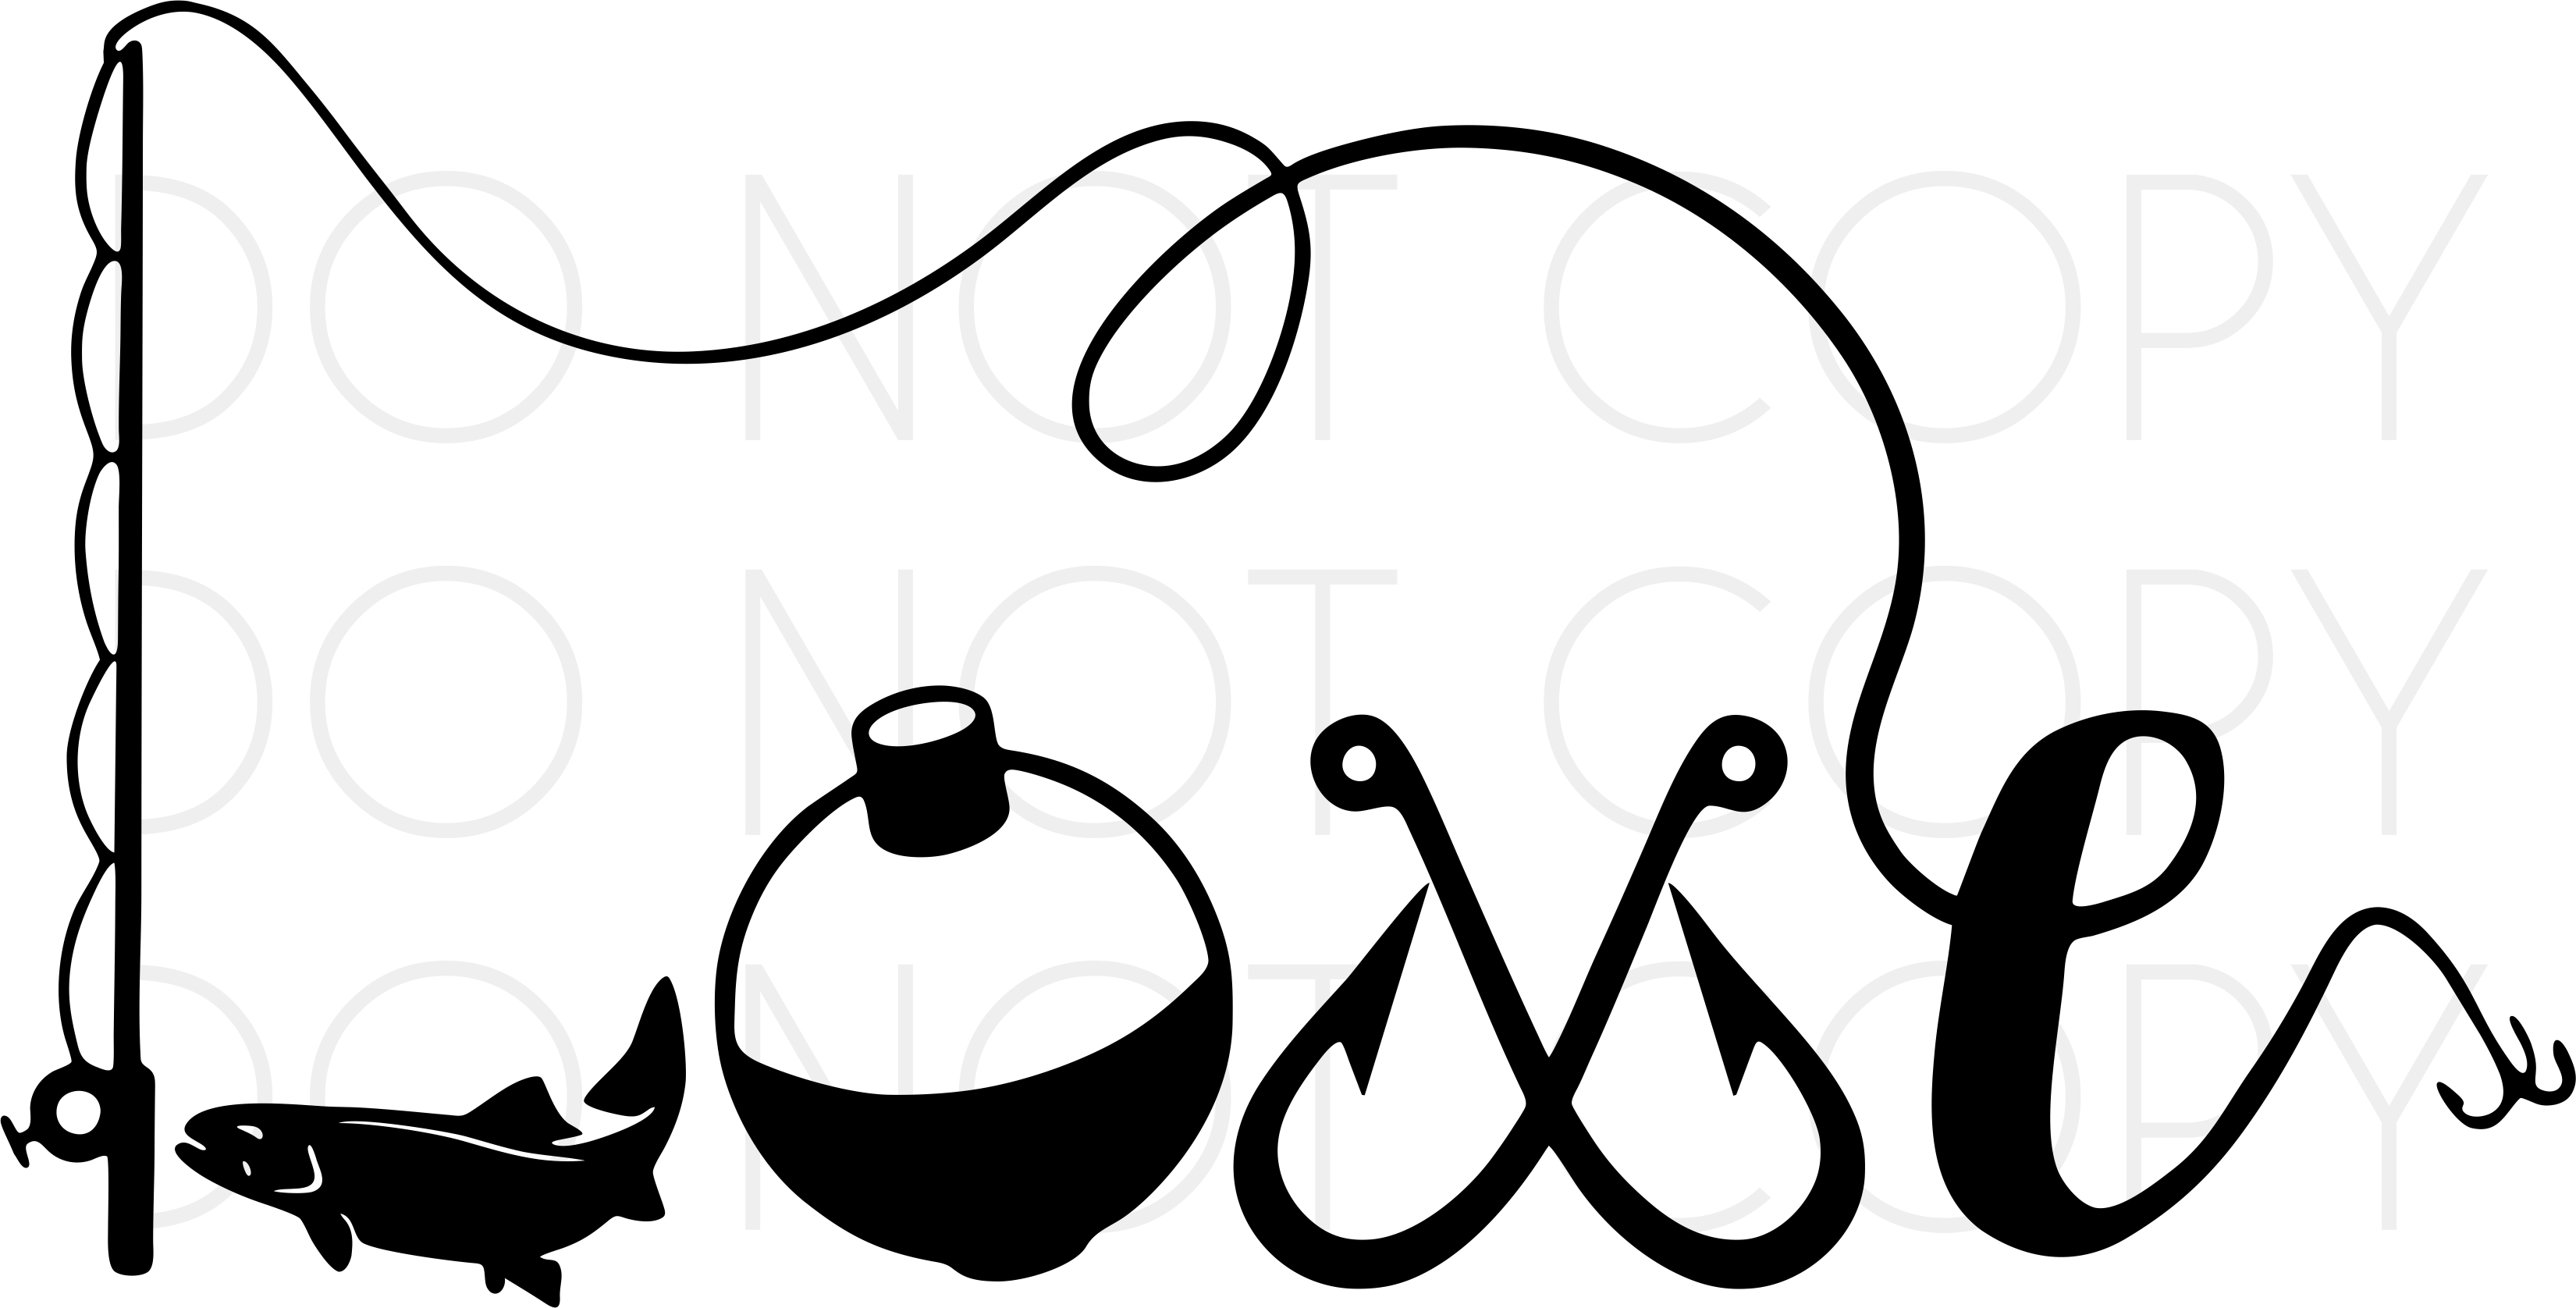 Download Fishing Love Svg Cut And Print Design Digital Download For Vinyl Cutters